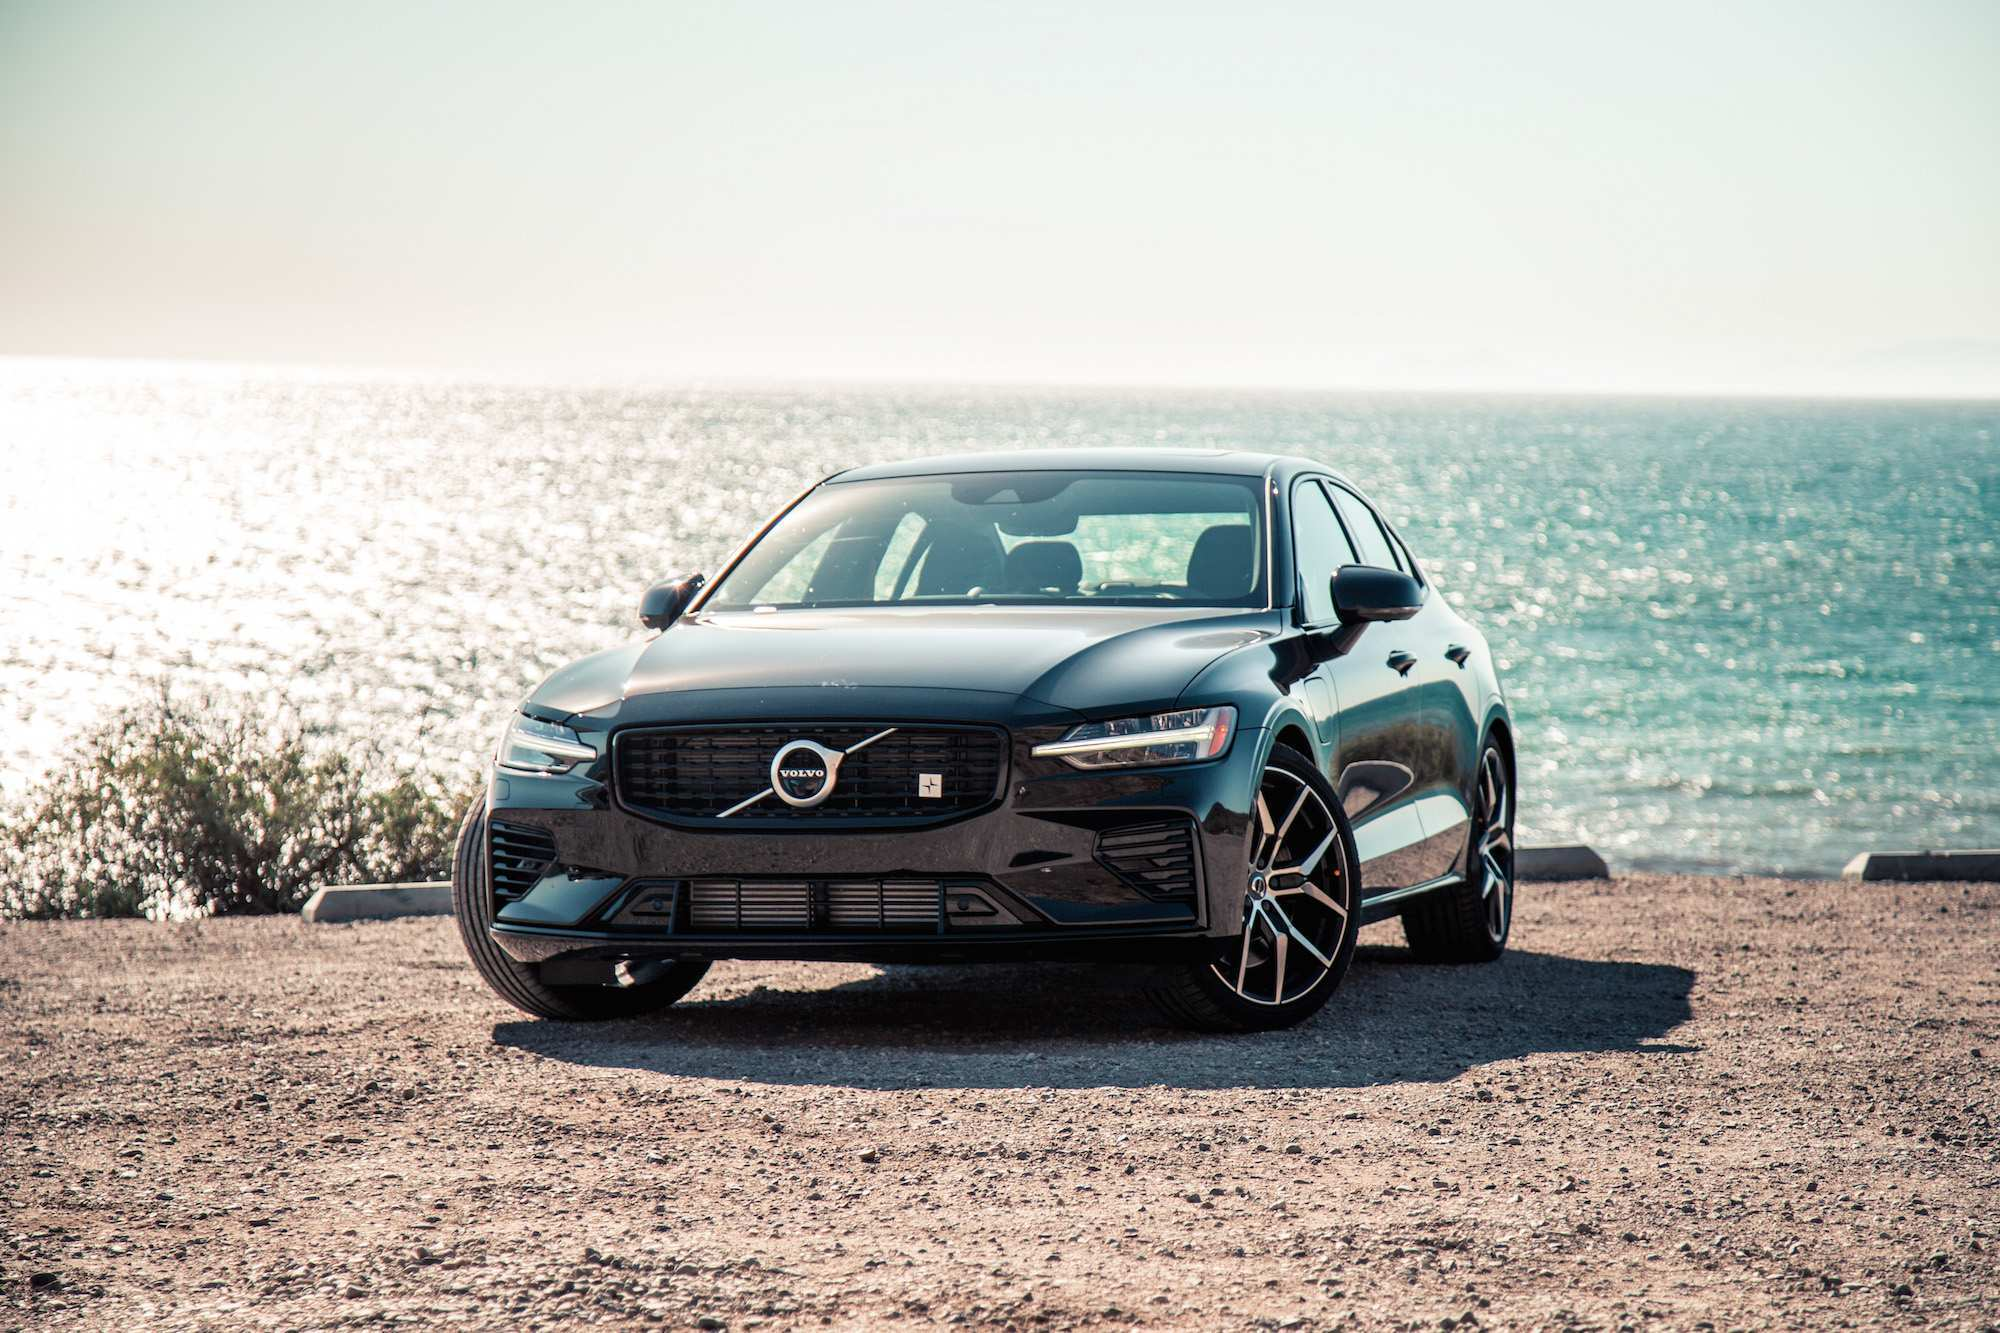 17 Gallery of 2020 Volvo V60 Length Redesign and Concept with 2020 Volvo V60 Length